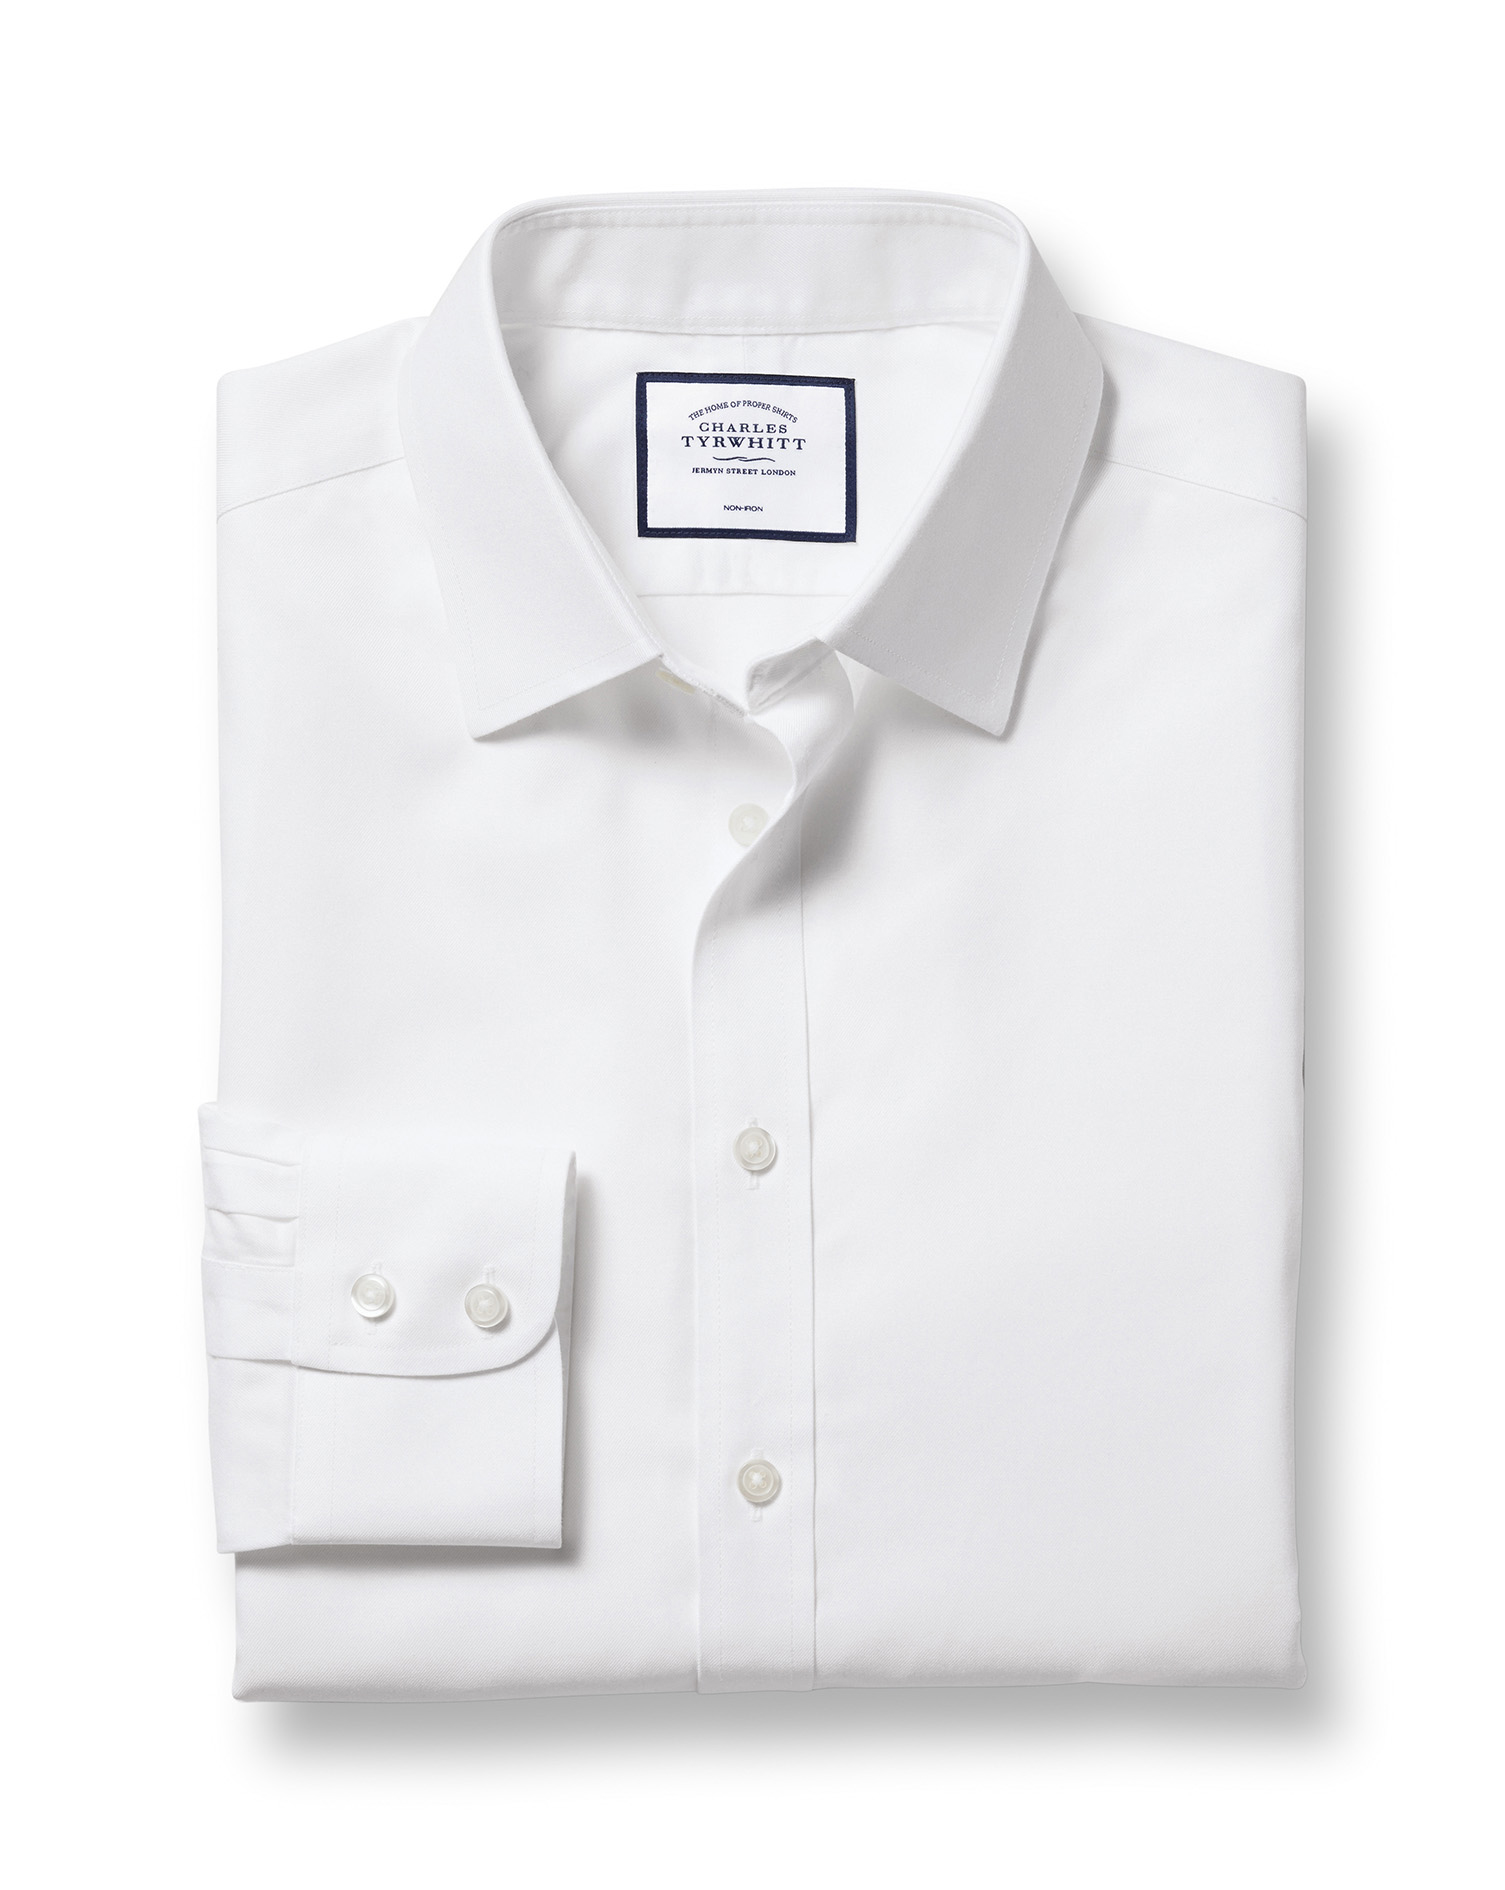 Cufflink shirt - features, rules and recommendations 77